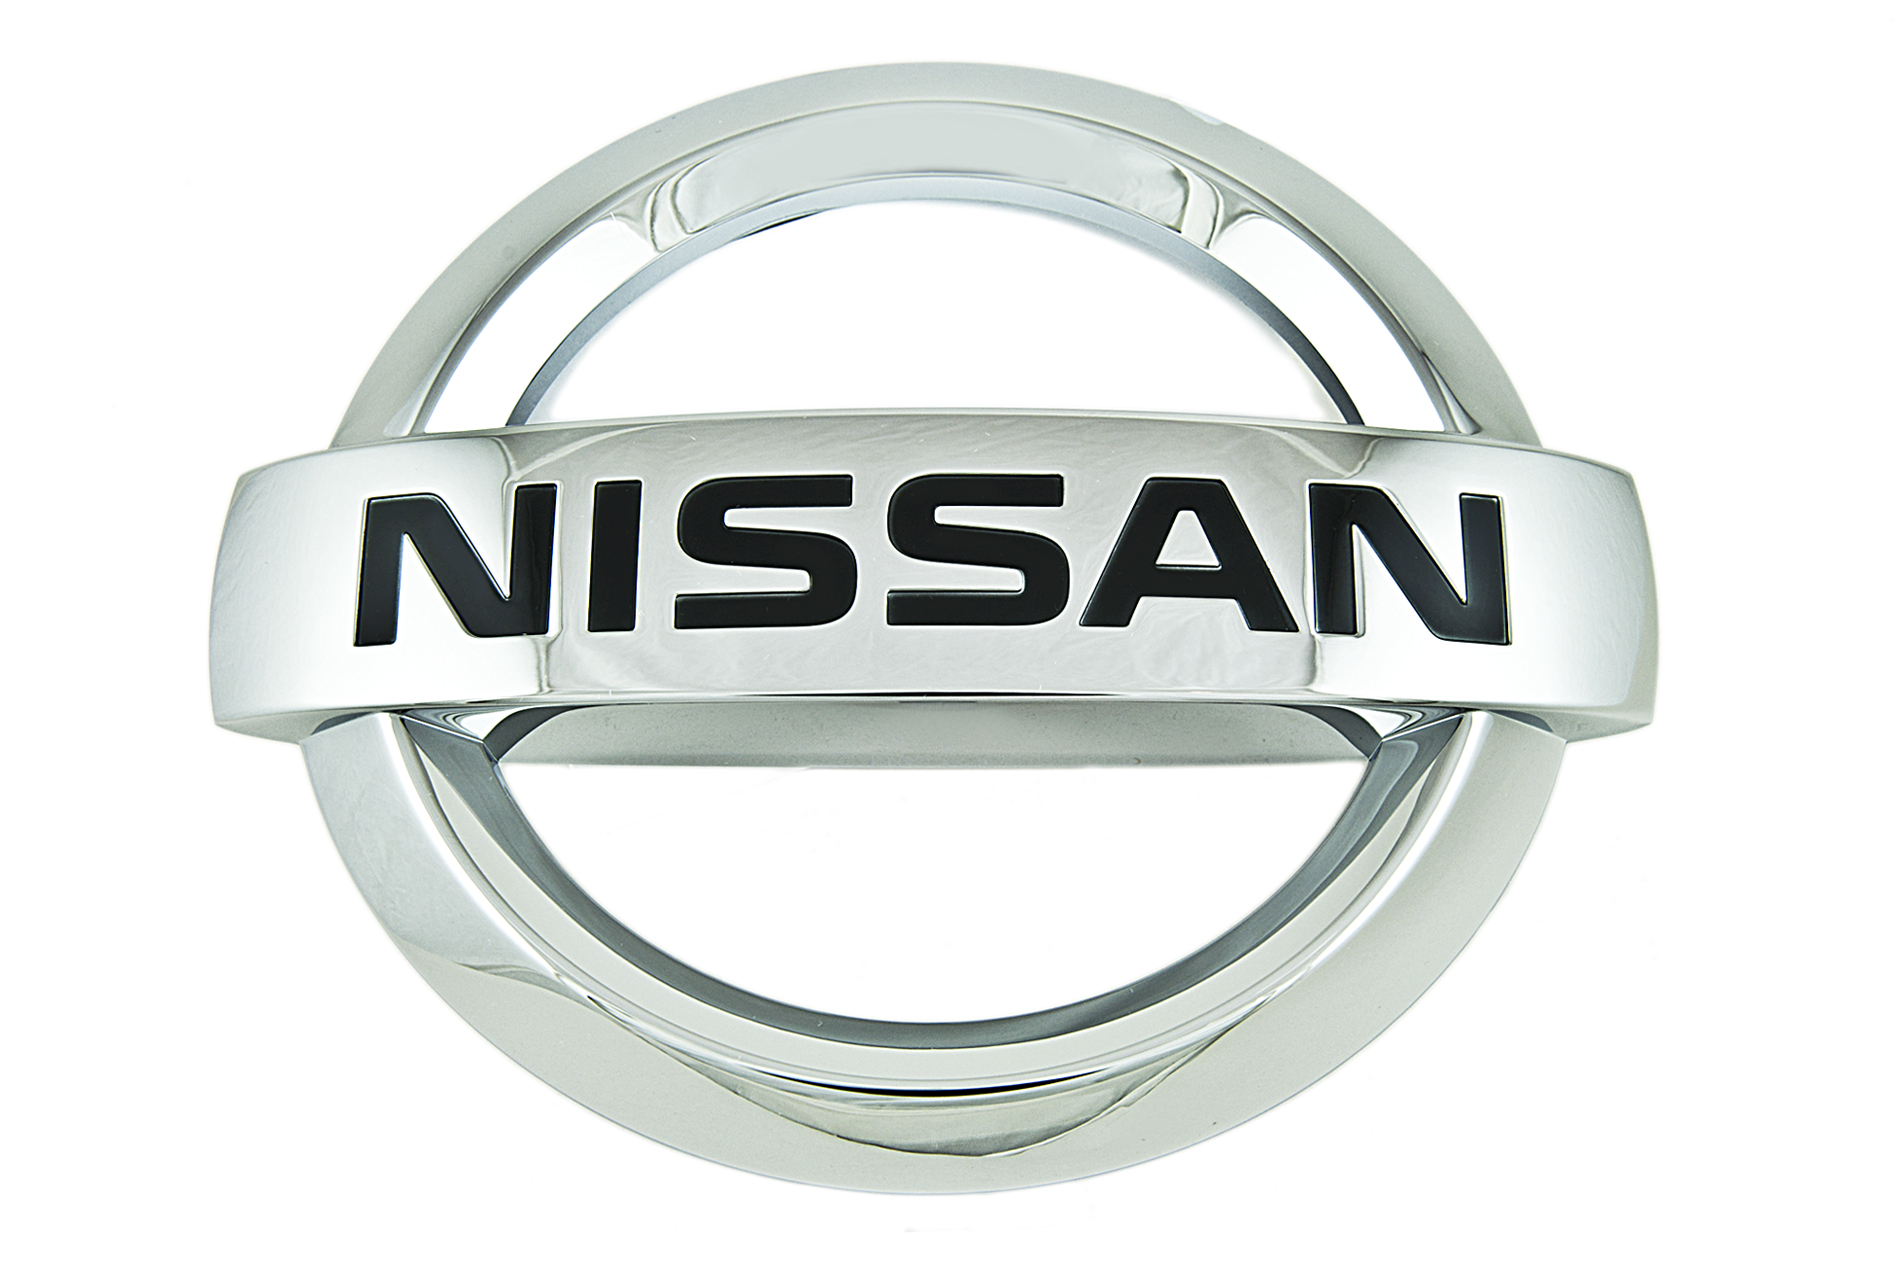 Nissan badges ebay